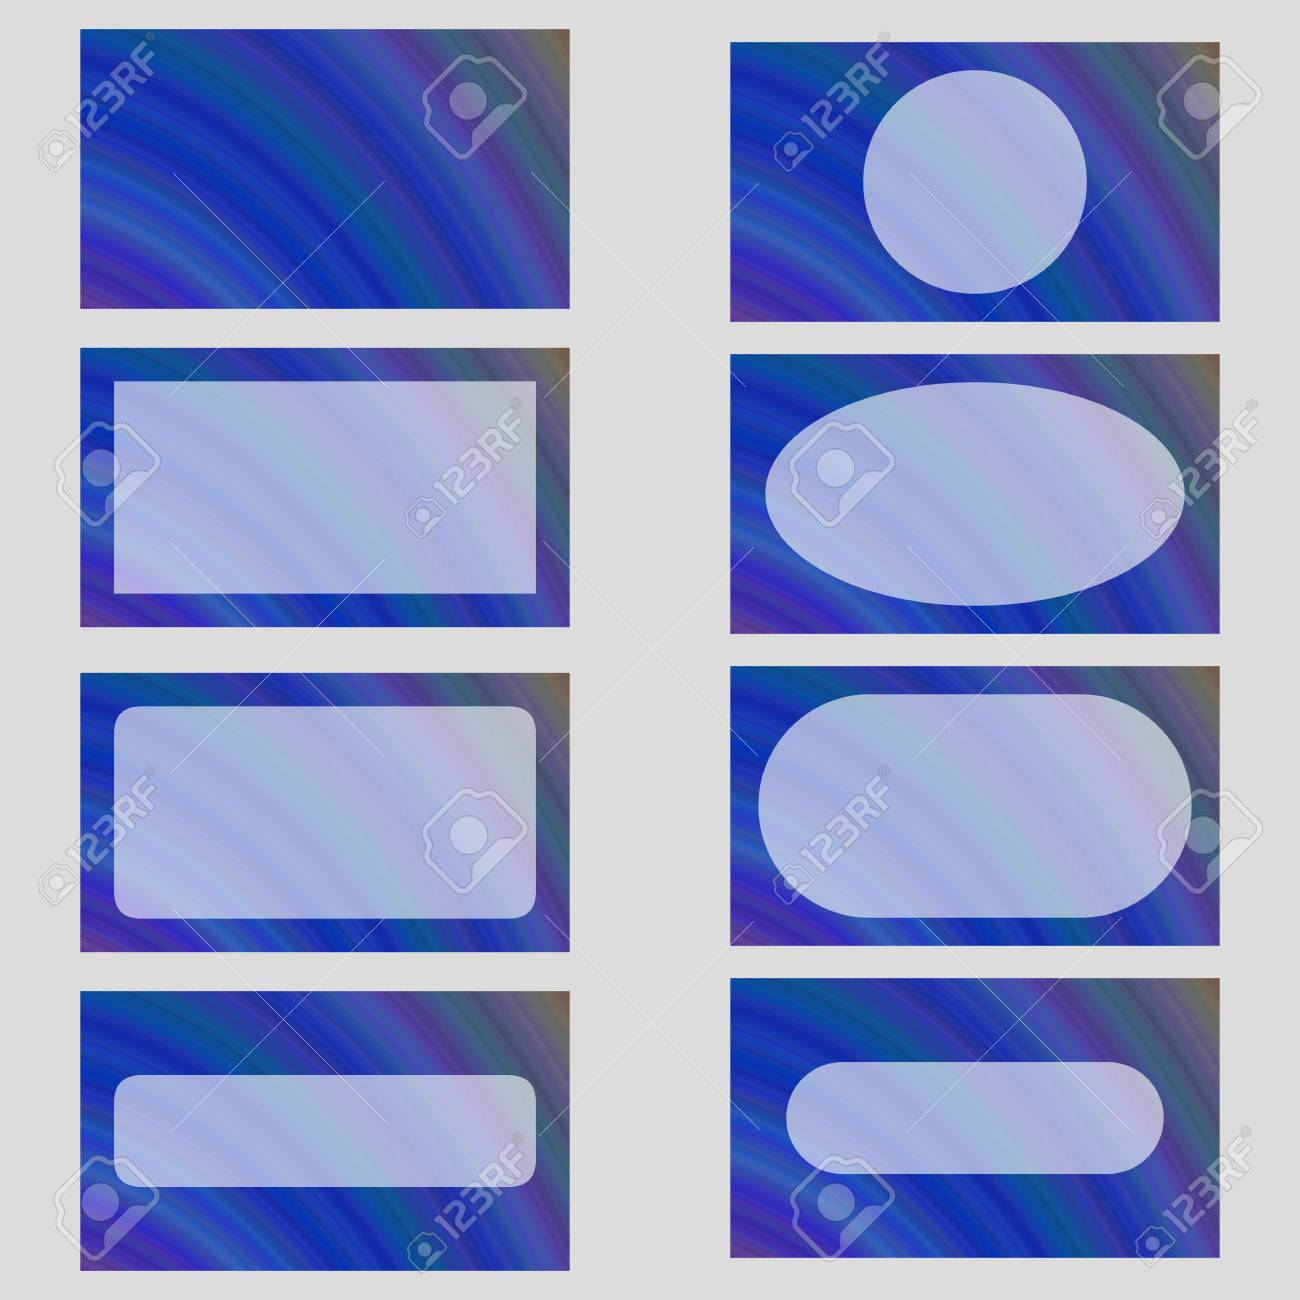 Blue abstract business card frame template design set royalty free blue abstract business card frame template design set stock vector 63667013 colourmoves